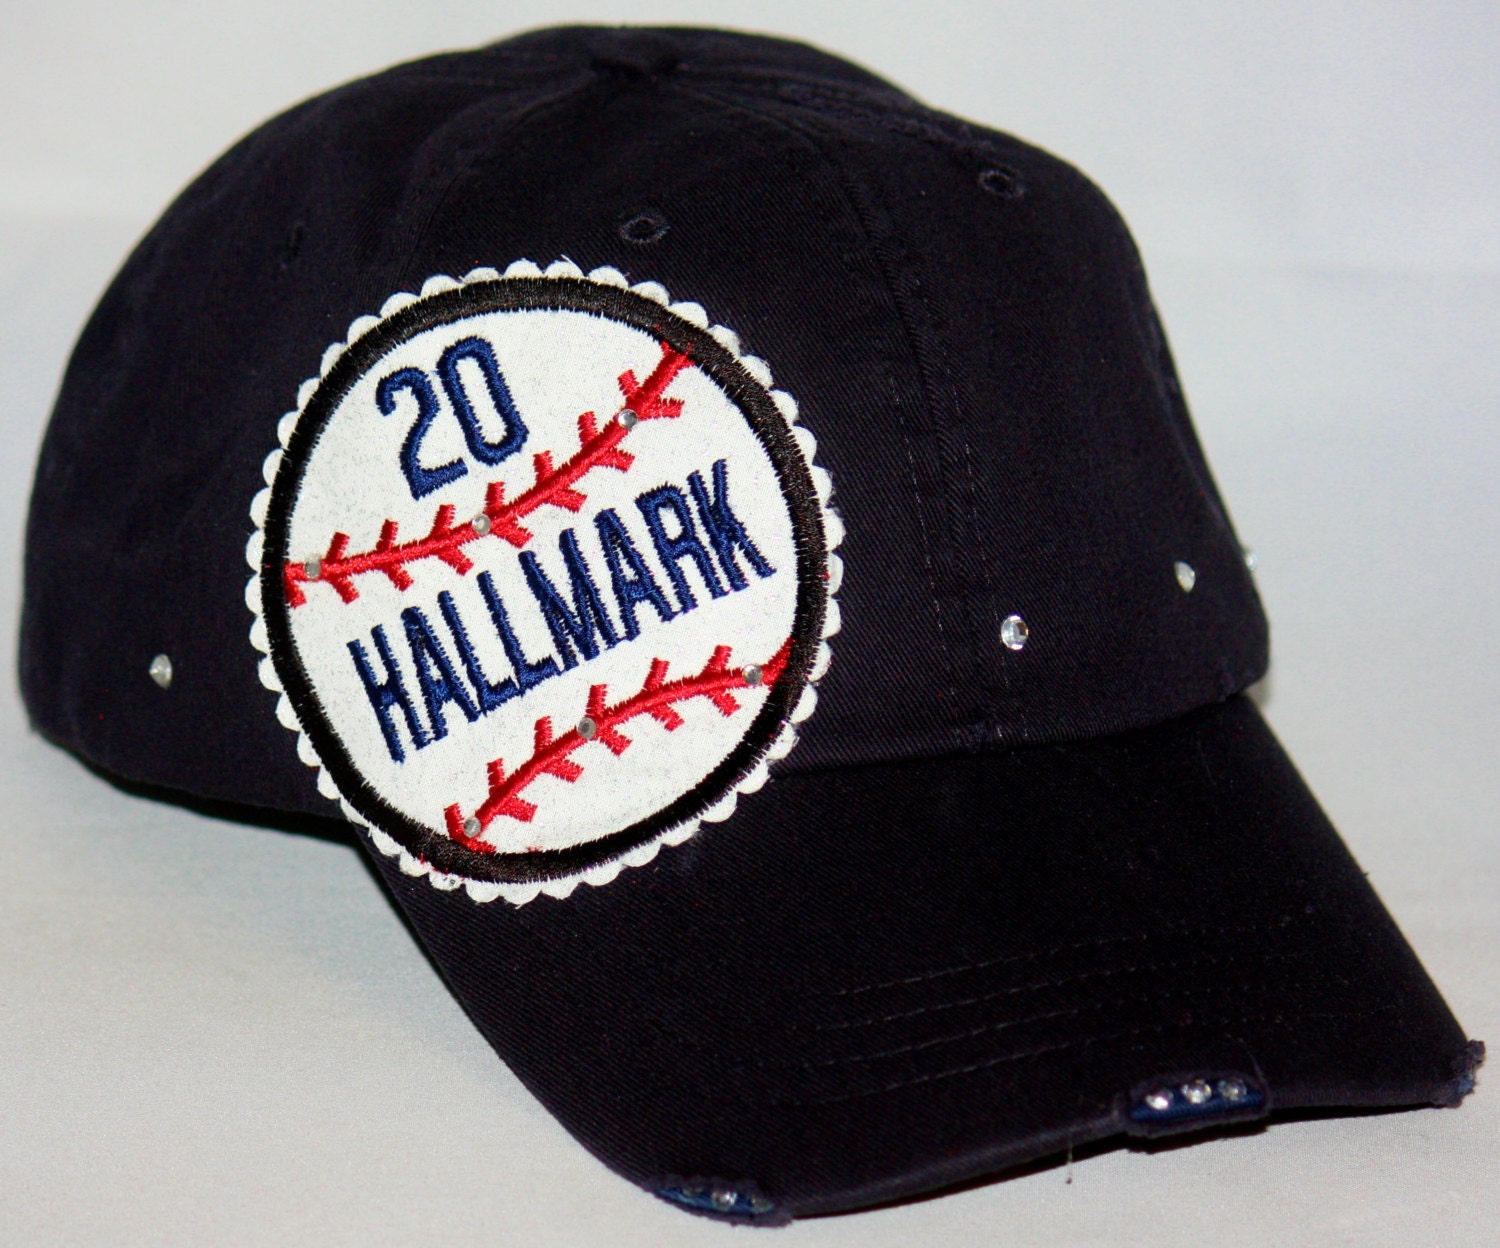 customized baseball hat baseball embroidery applique